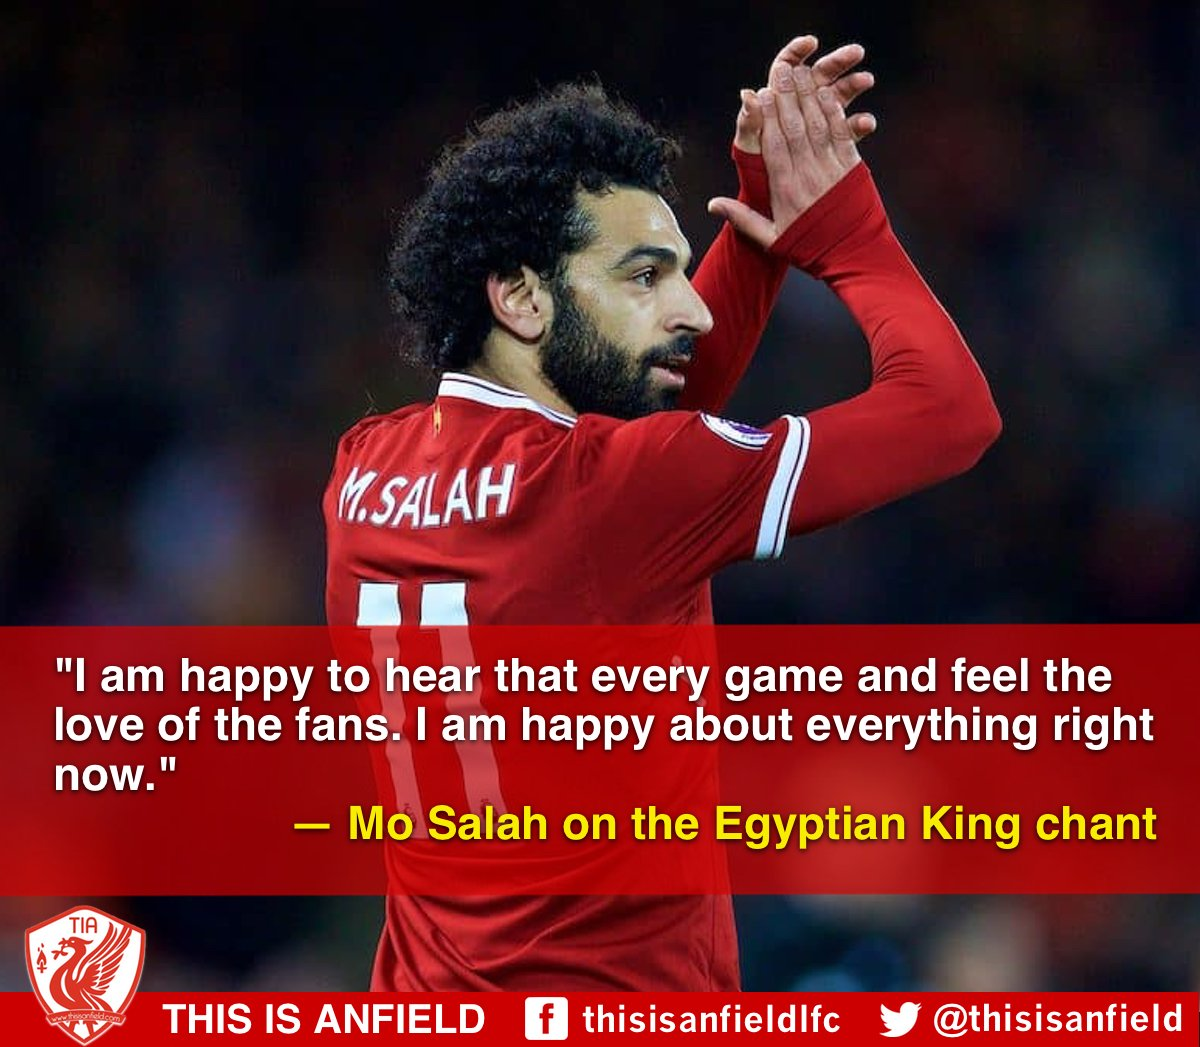 Mo Salah has a lot to be happy about right now... �� https://t.co/yzktvuNOmX